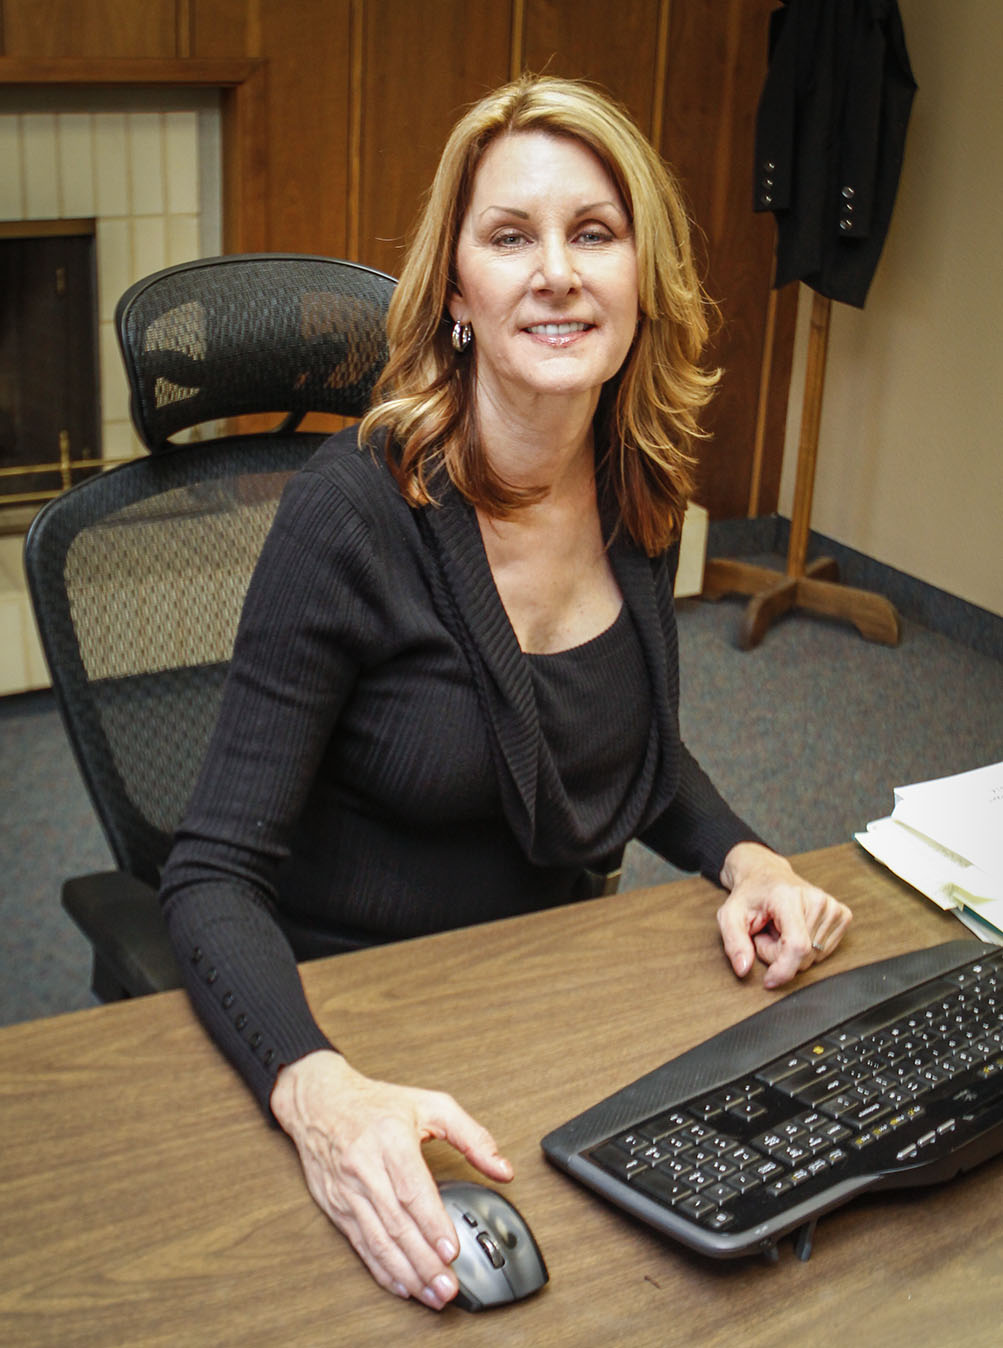 Cal State University San Bernardino >> City manager hires new assistant | Campus Times